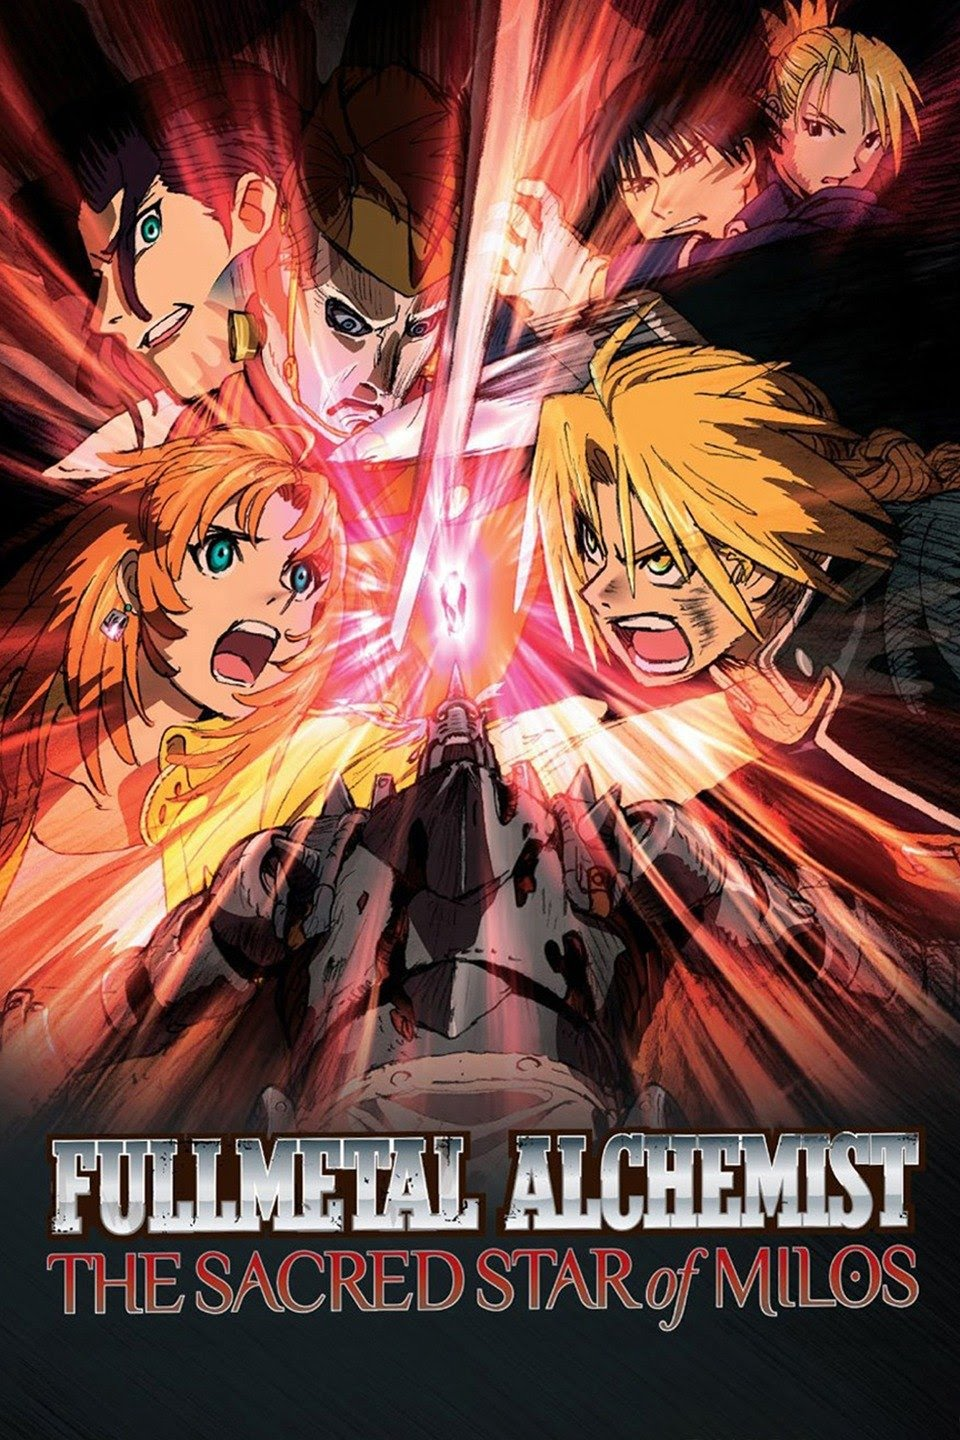 Download Fullmetal Alchemist – The Sacred Star of Milos 2011 Dual Audio Hindi Dubbed BluRay 480p 720p Mkv